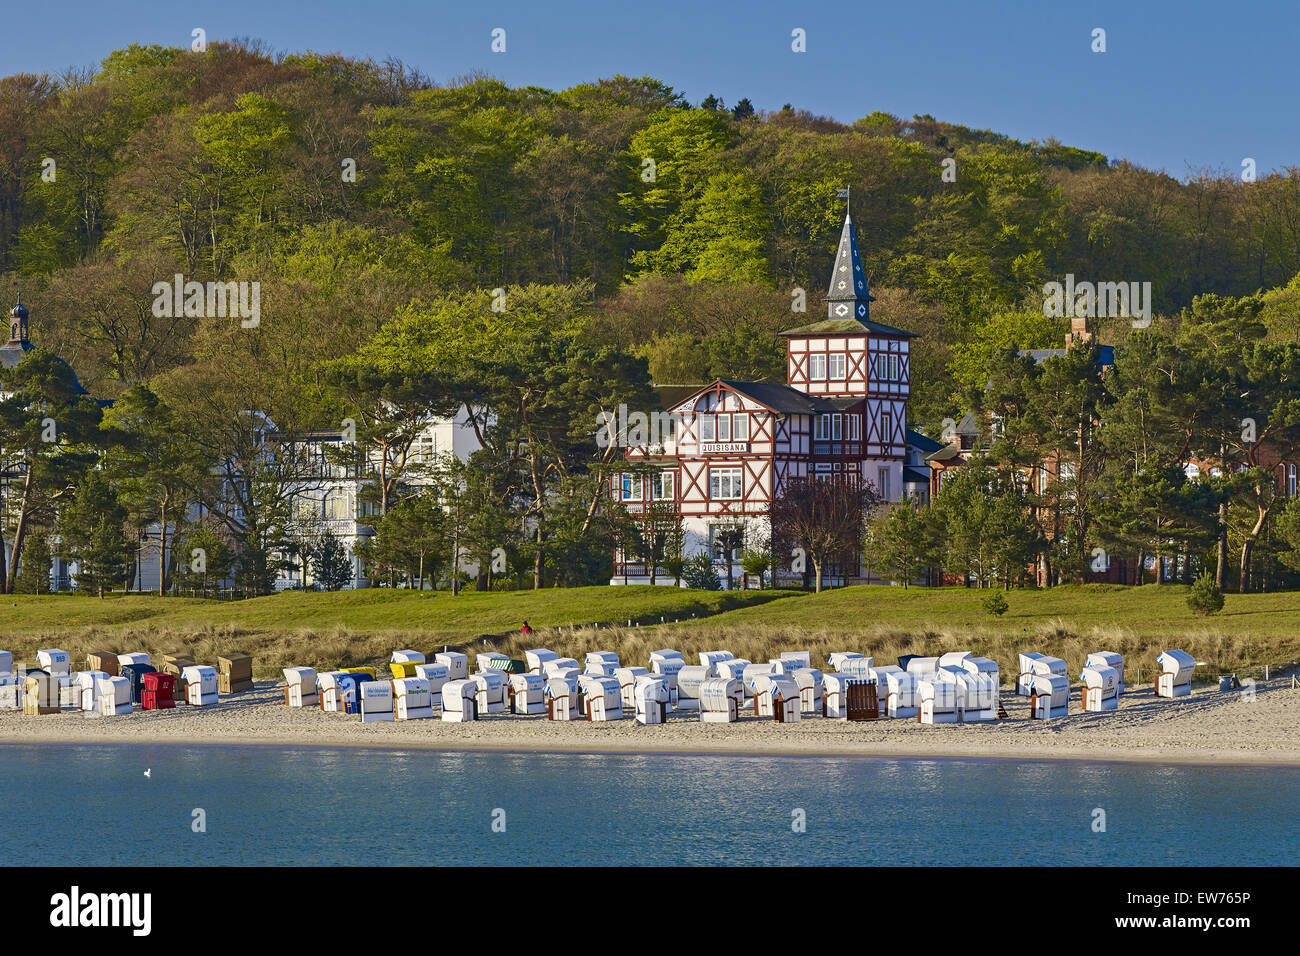 Beach in the seaside resort Binz, Rügen, Germany - Stock Image